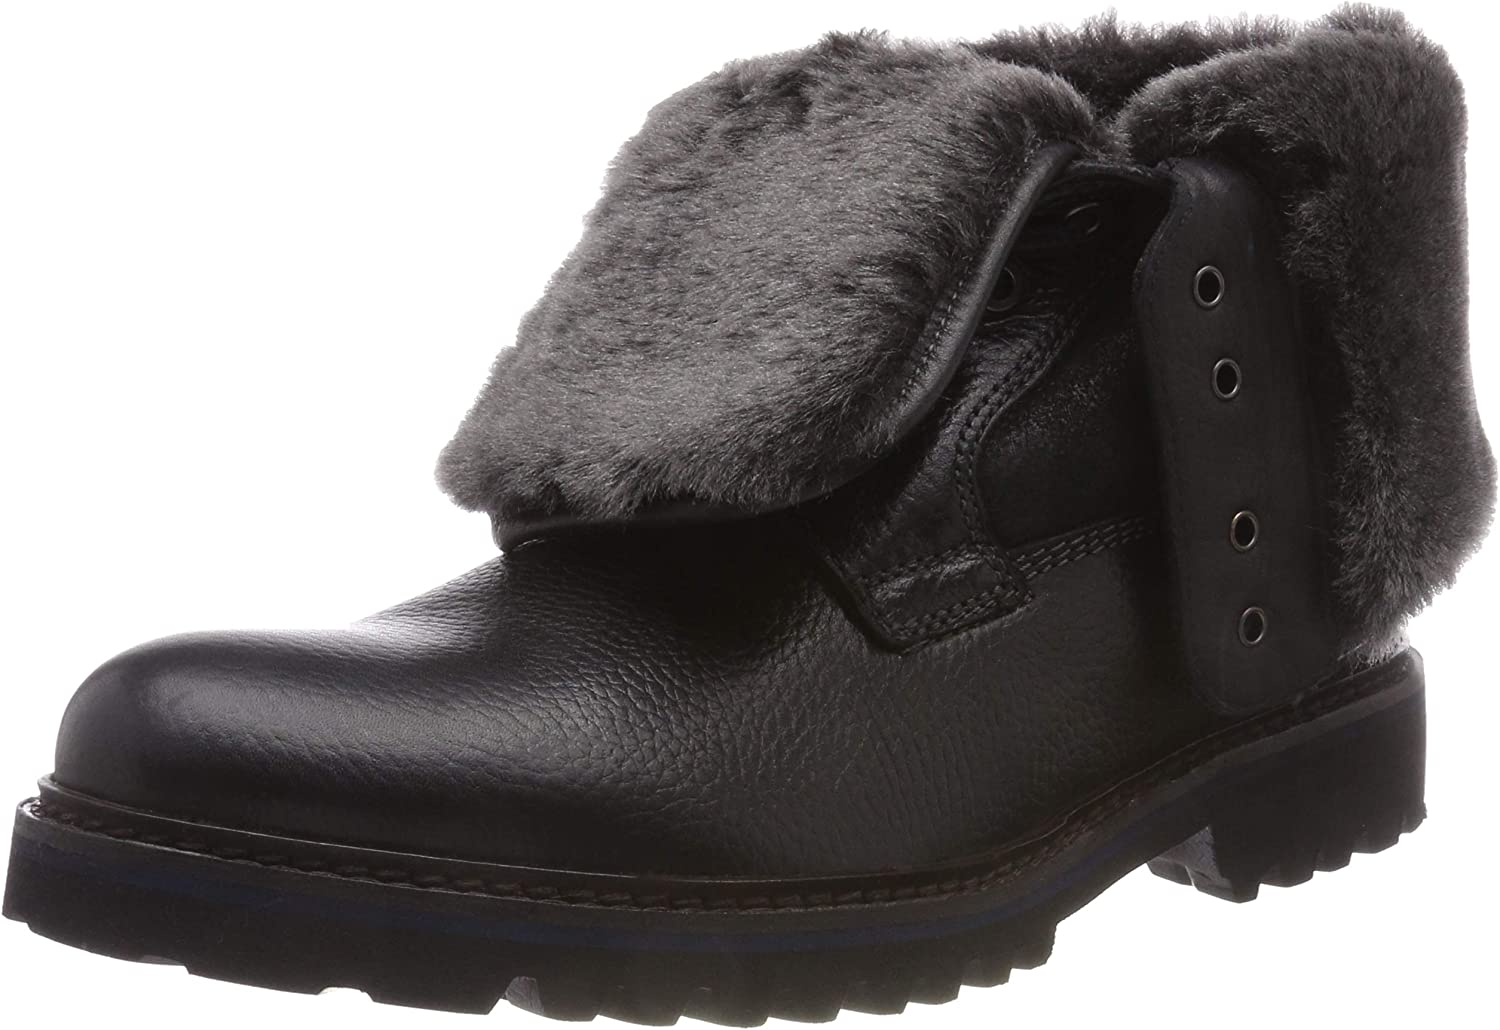 Sioux Quendron-707-lf, Men's Ankle Boots